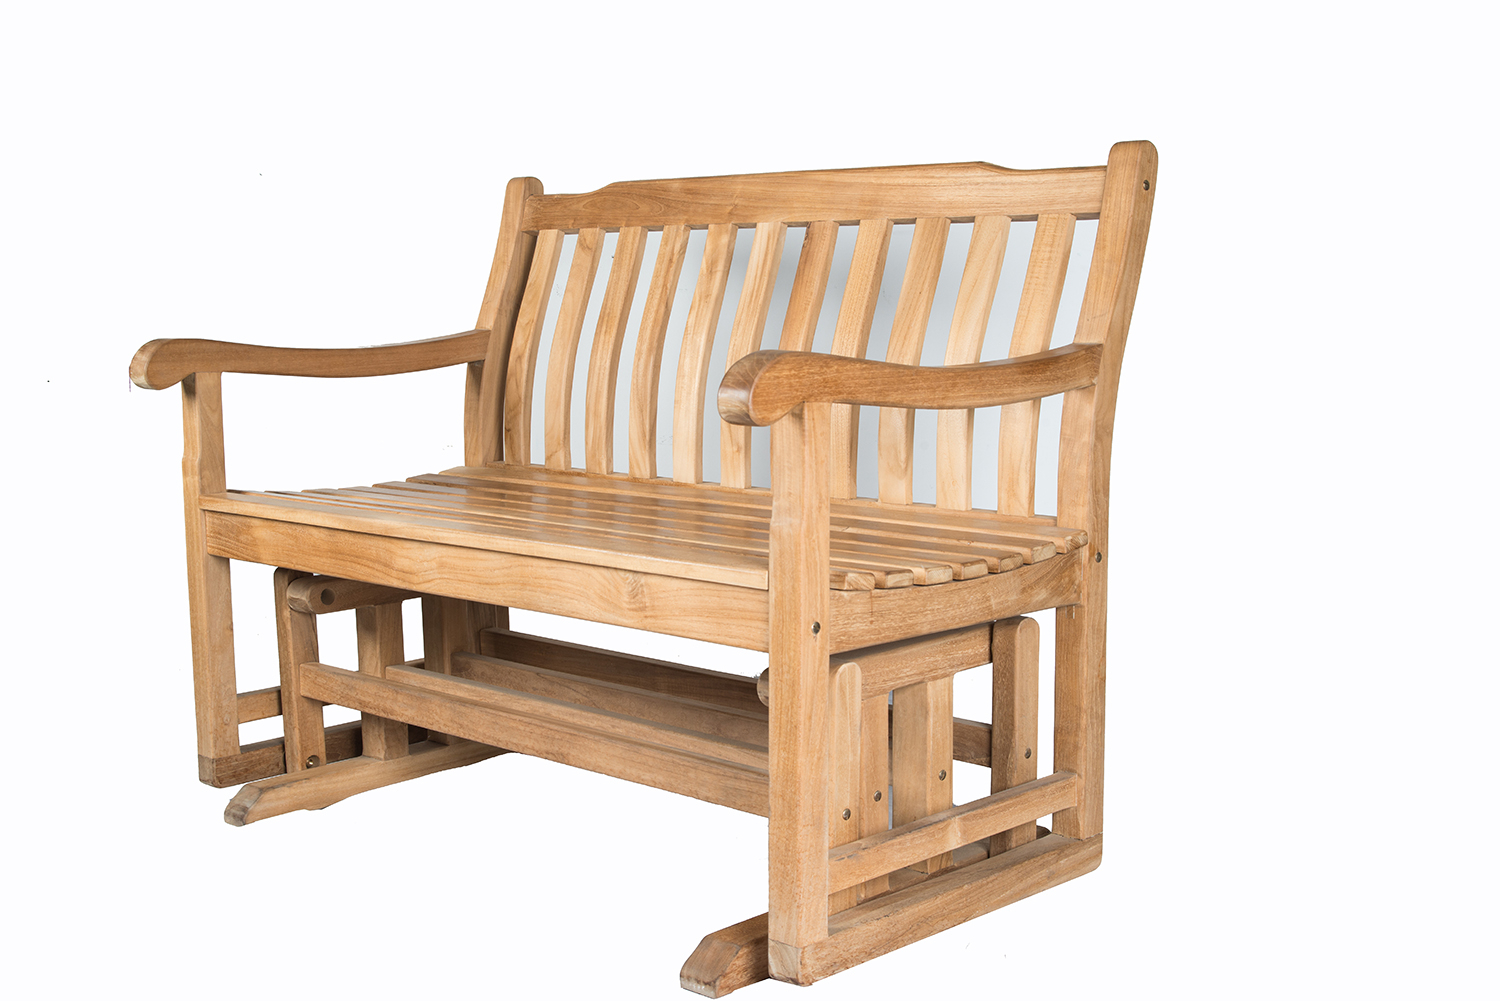 Shop For Dewata Classic Teak Wood B+ Class Glider Bench Inside Classic Glider Benches (View 10 of 25)